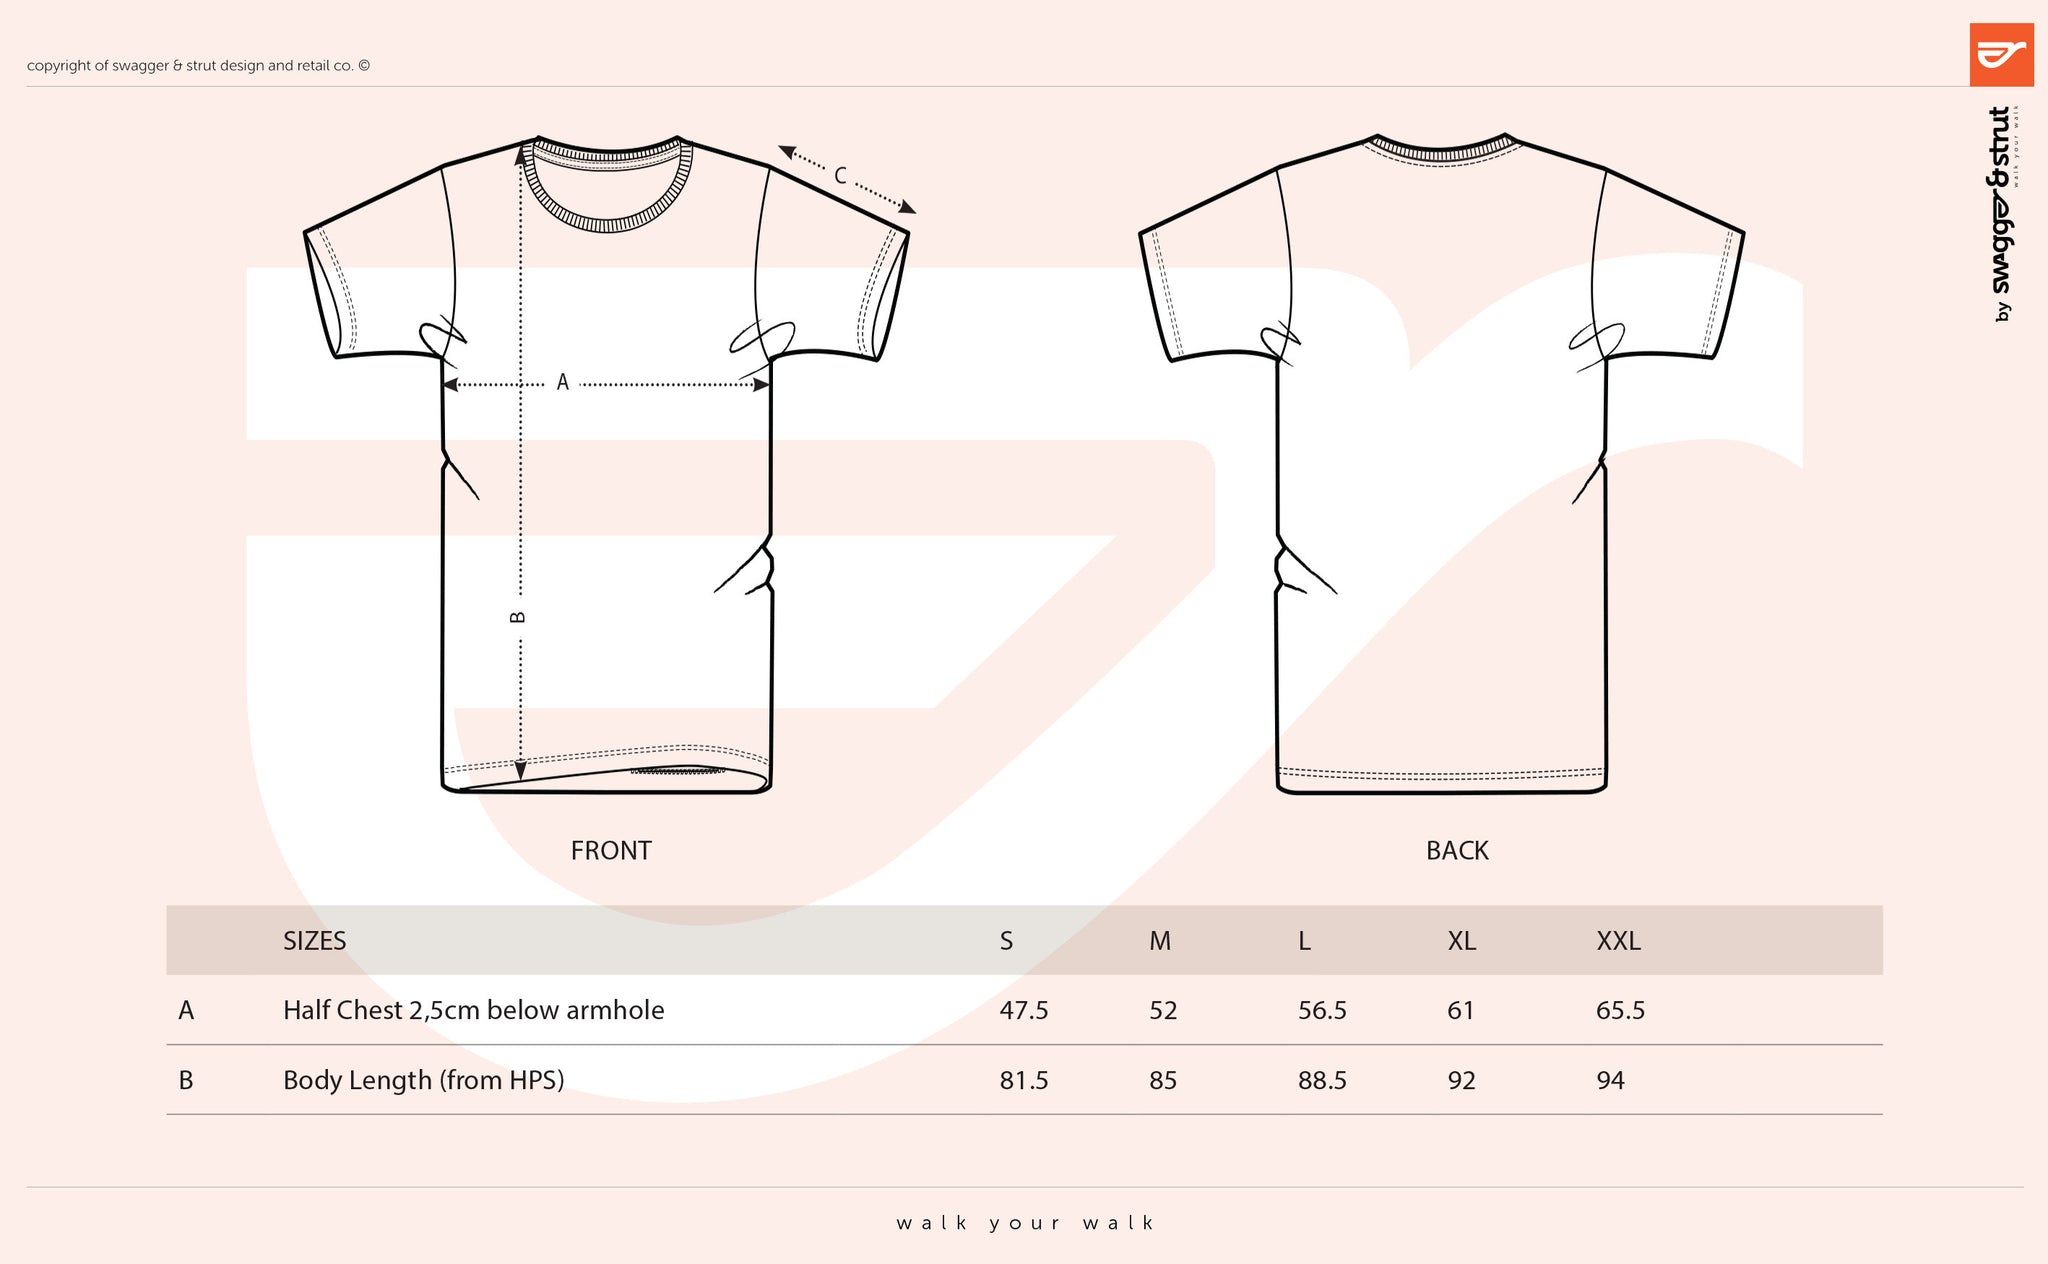 OUR TALL TEE Size Chart Measurements Swagger Strut Apparel - T shirt design size template